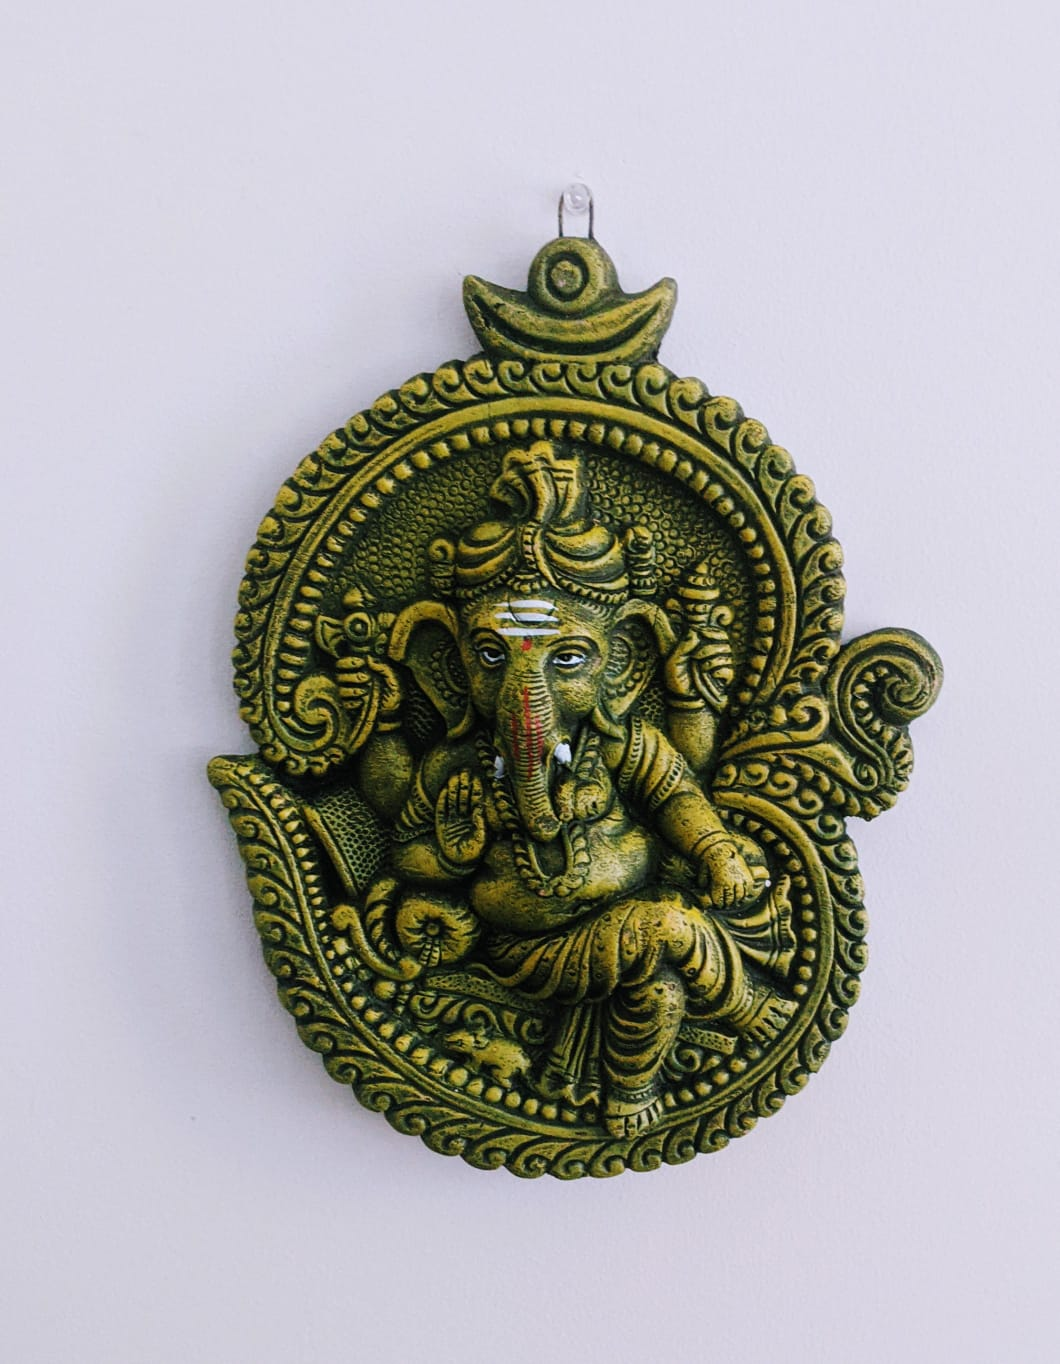 Cross Legged Ganesha Ganpati Om Shaped Wall Hanging Greenish Grey